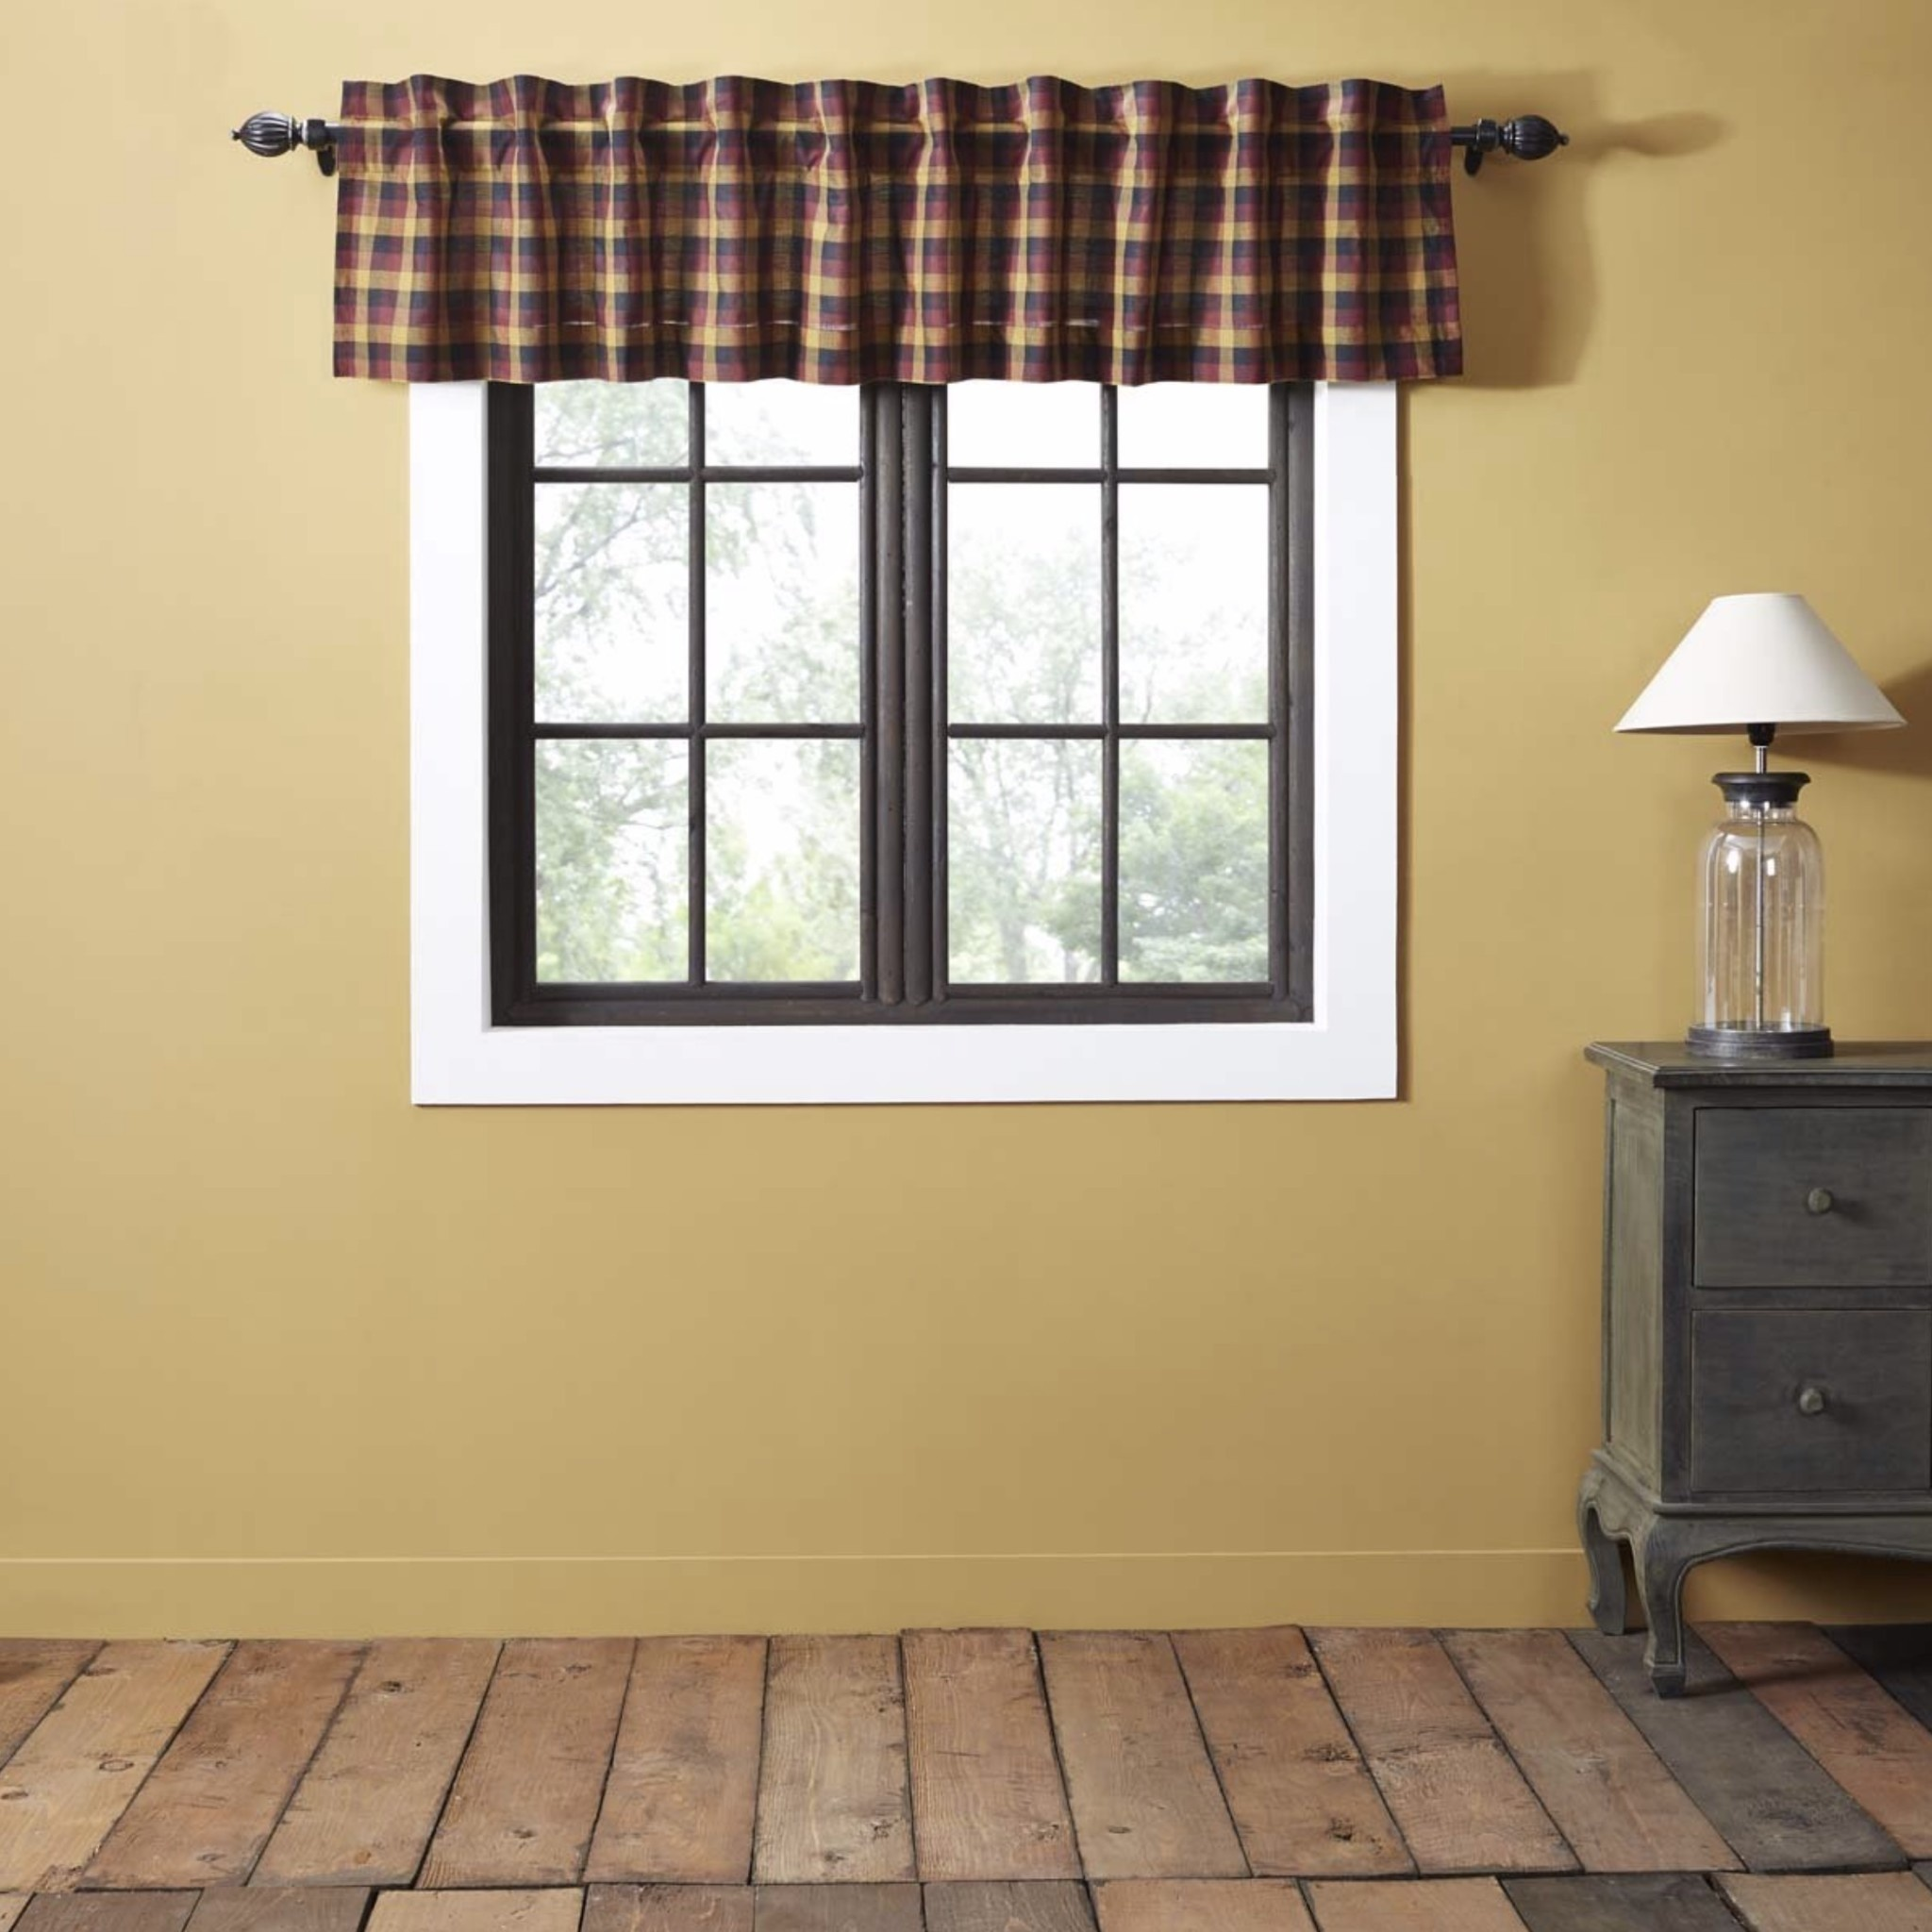 VHC Brands Heritage Farms Primitive Check Valance